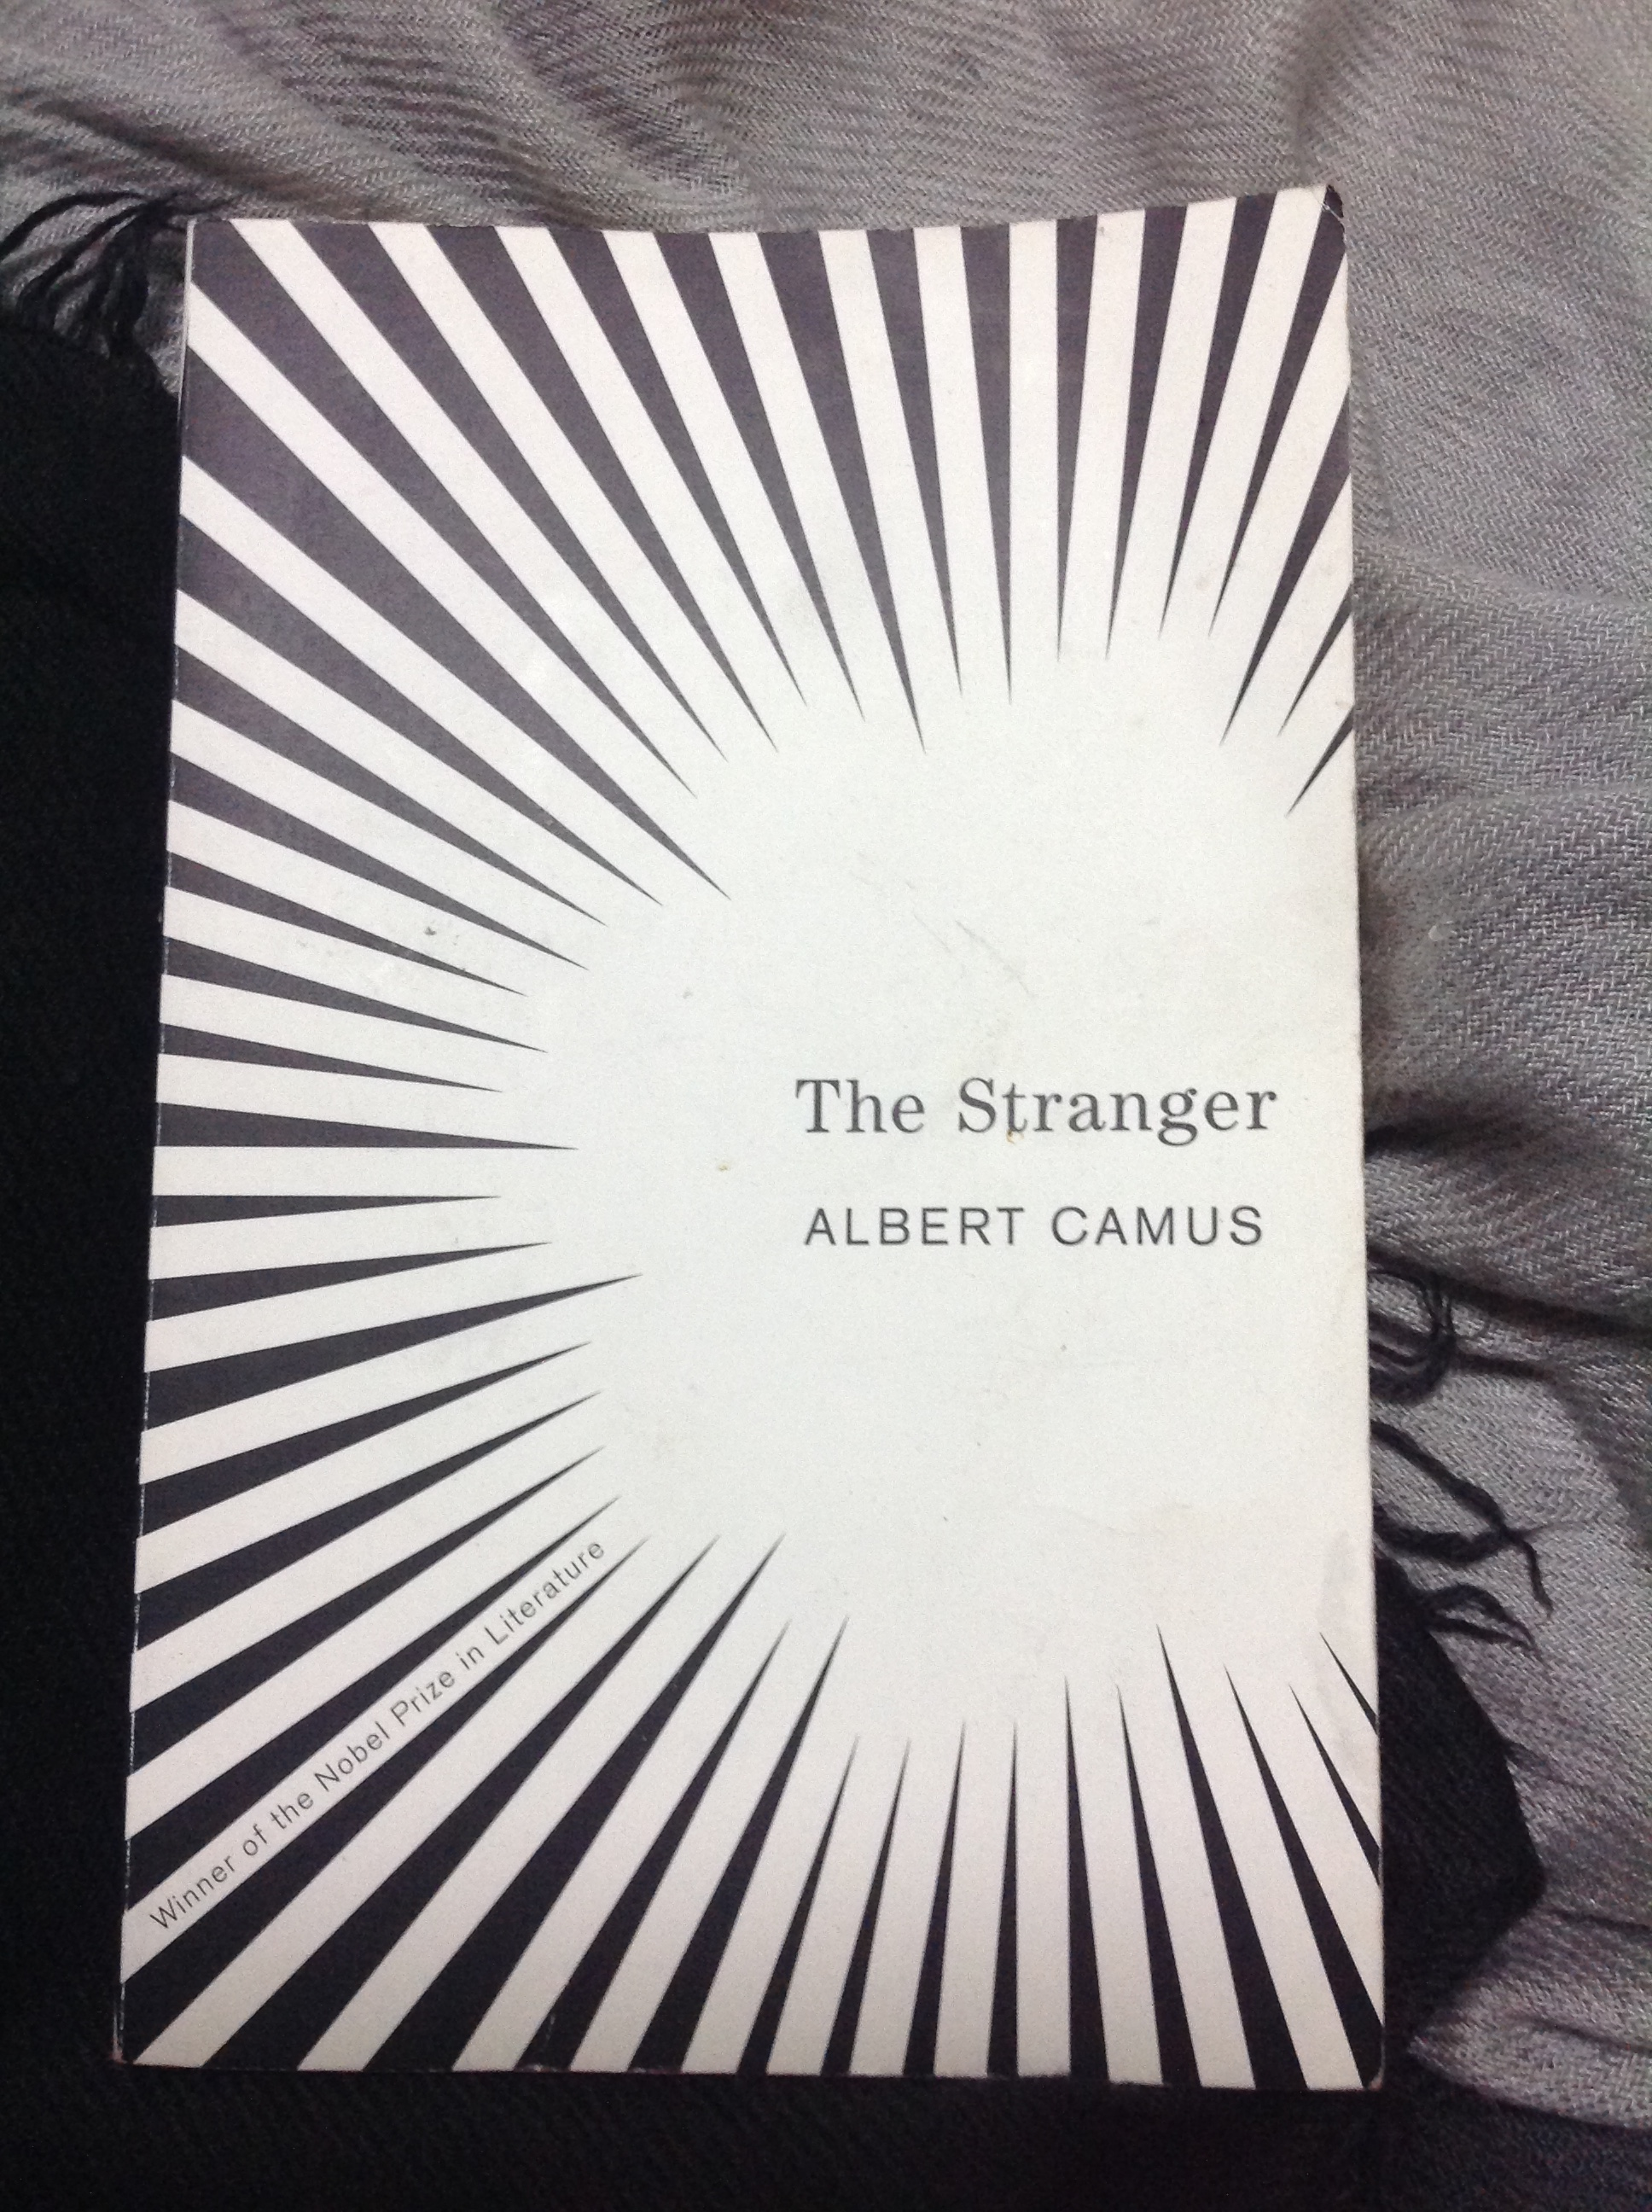 characteristics of meursault in the stranger by albert camus